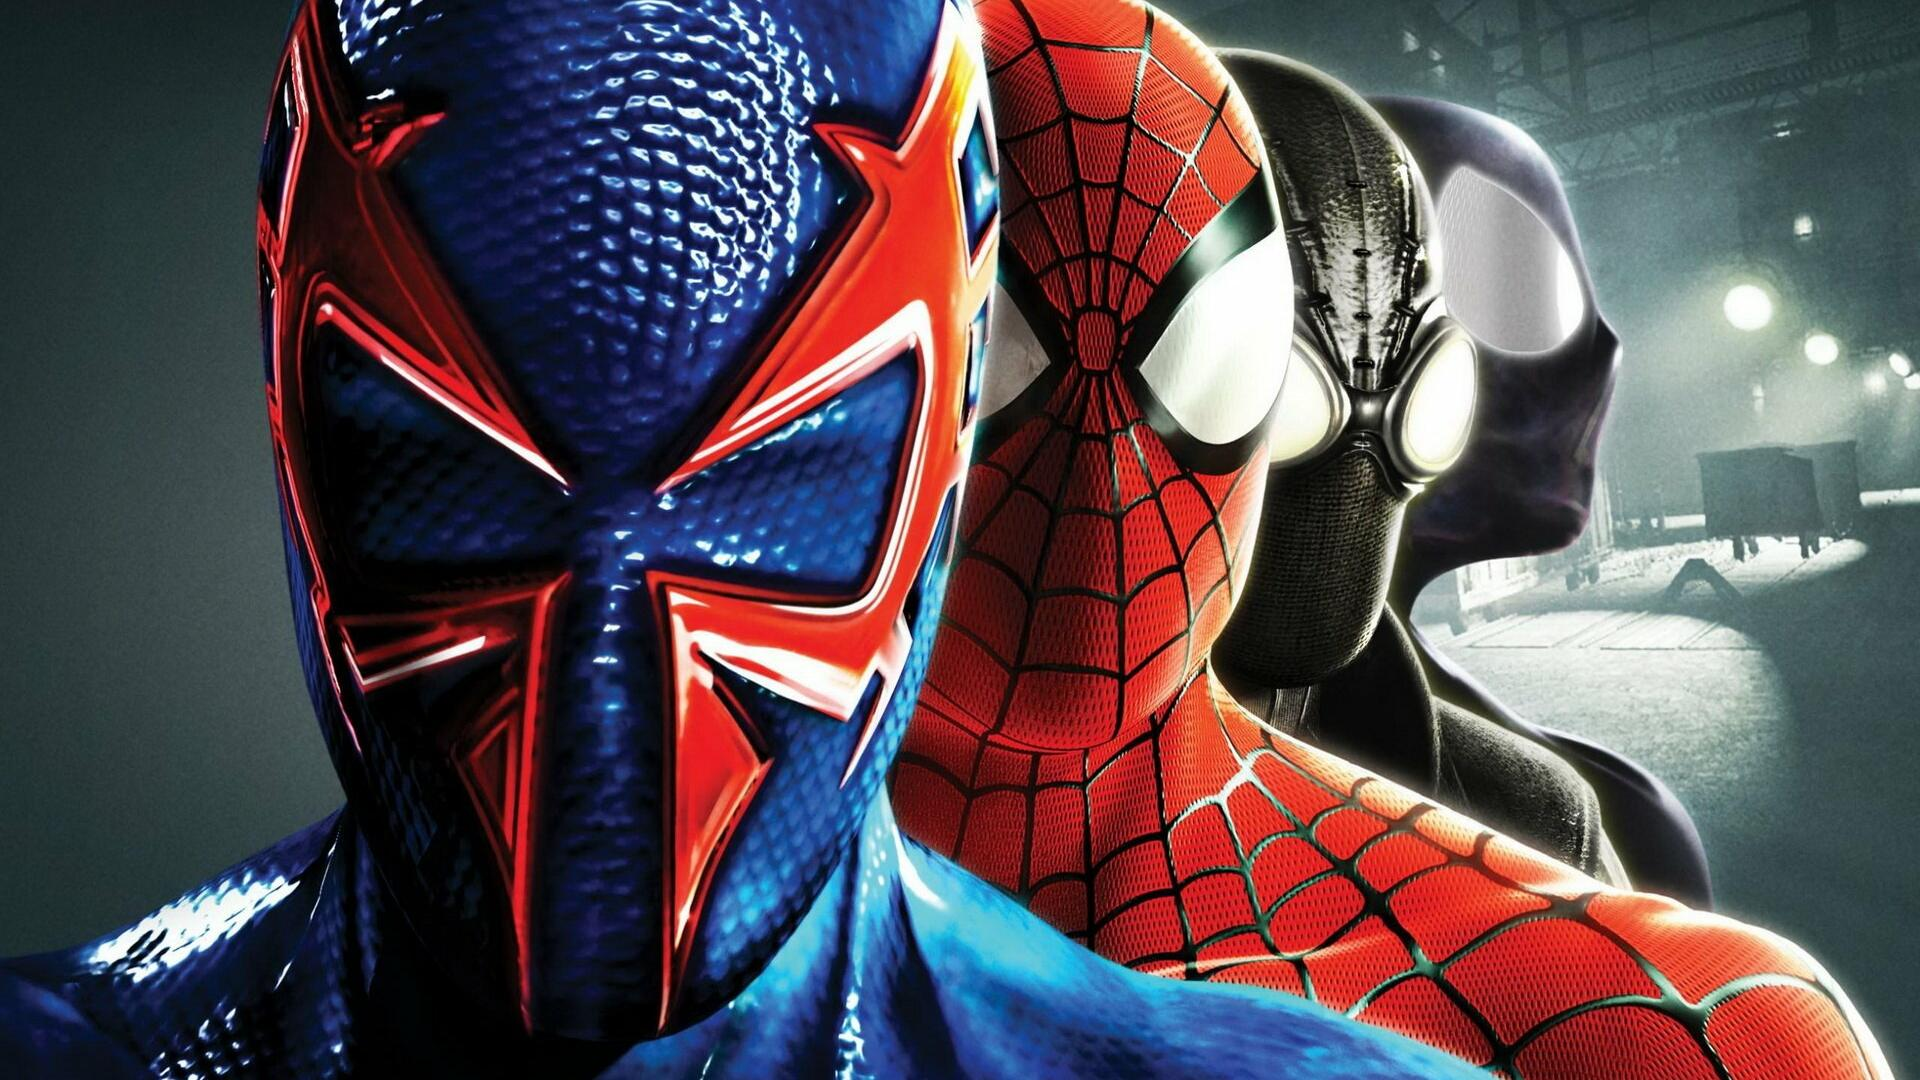 The Oscar Winning Spider-Man: Into the Spider-Verse Had Its Roots in a Mostly Forgotten Spider-Man Video Game